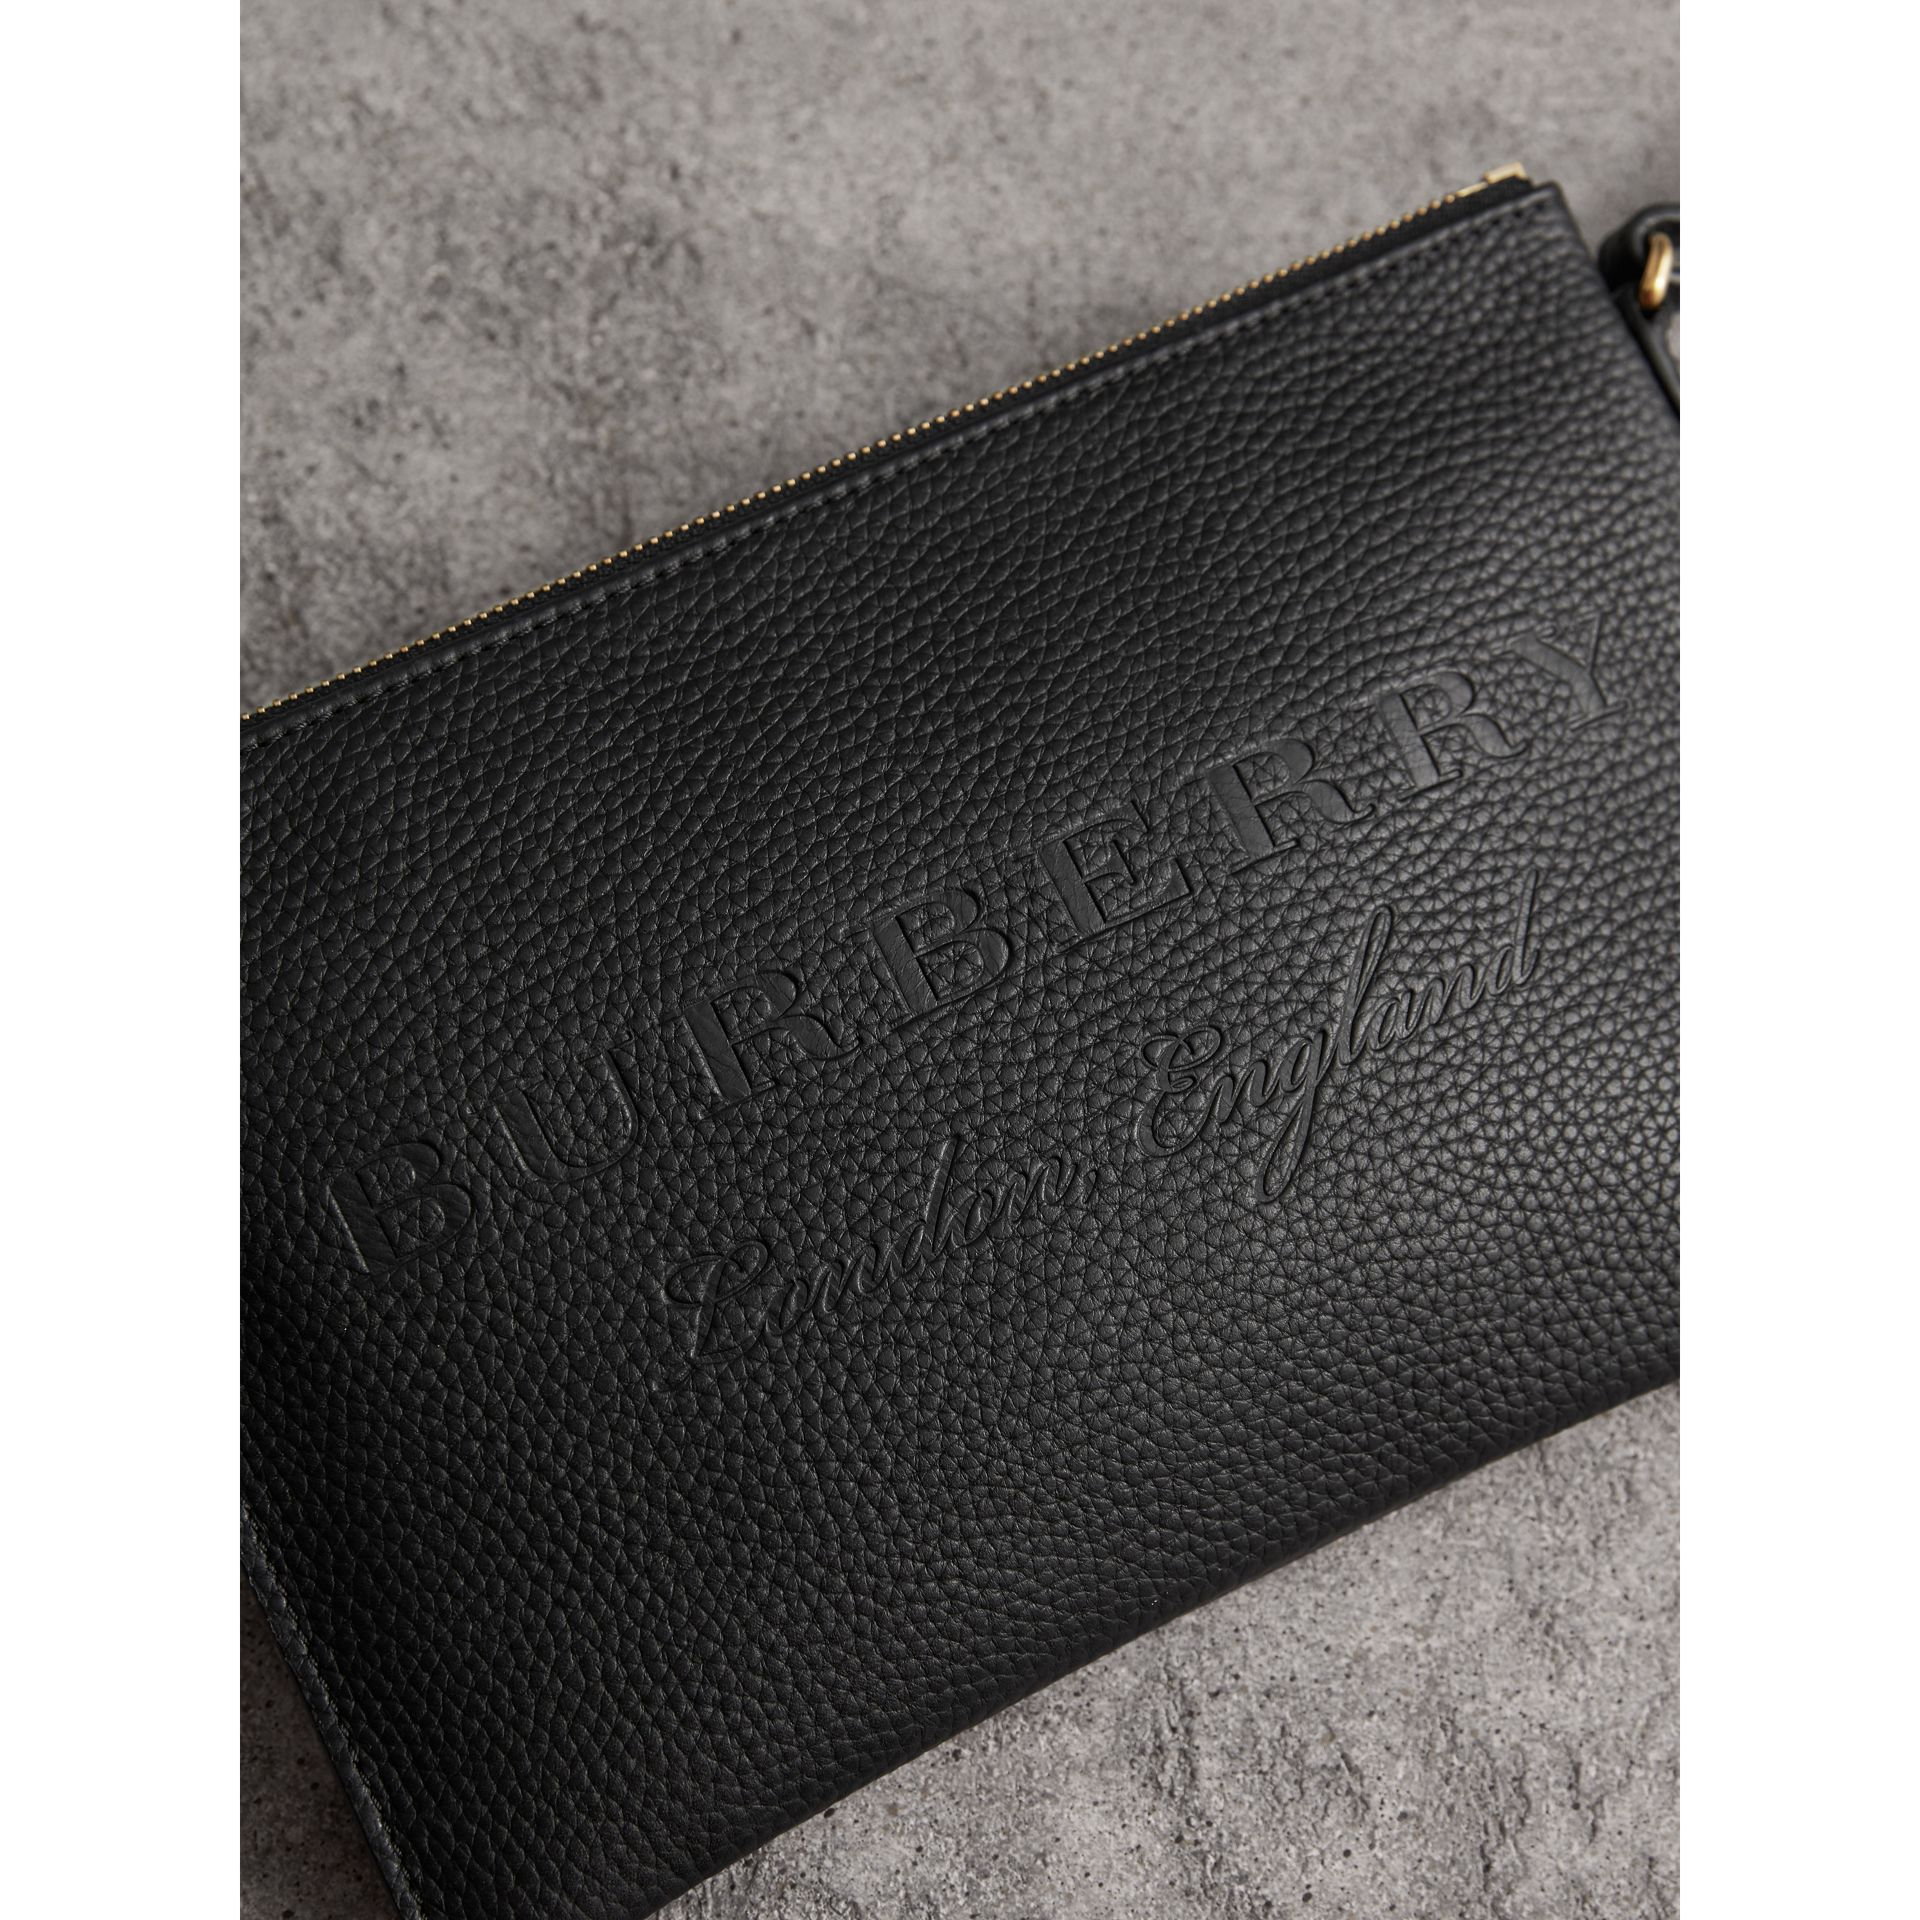 Embossed Leather Clutch Bag in Black - Women | Burberry Canada - gallery image 1